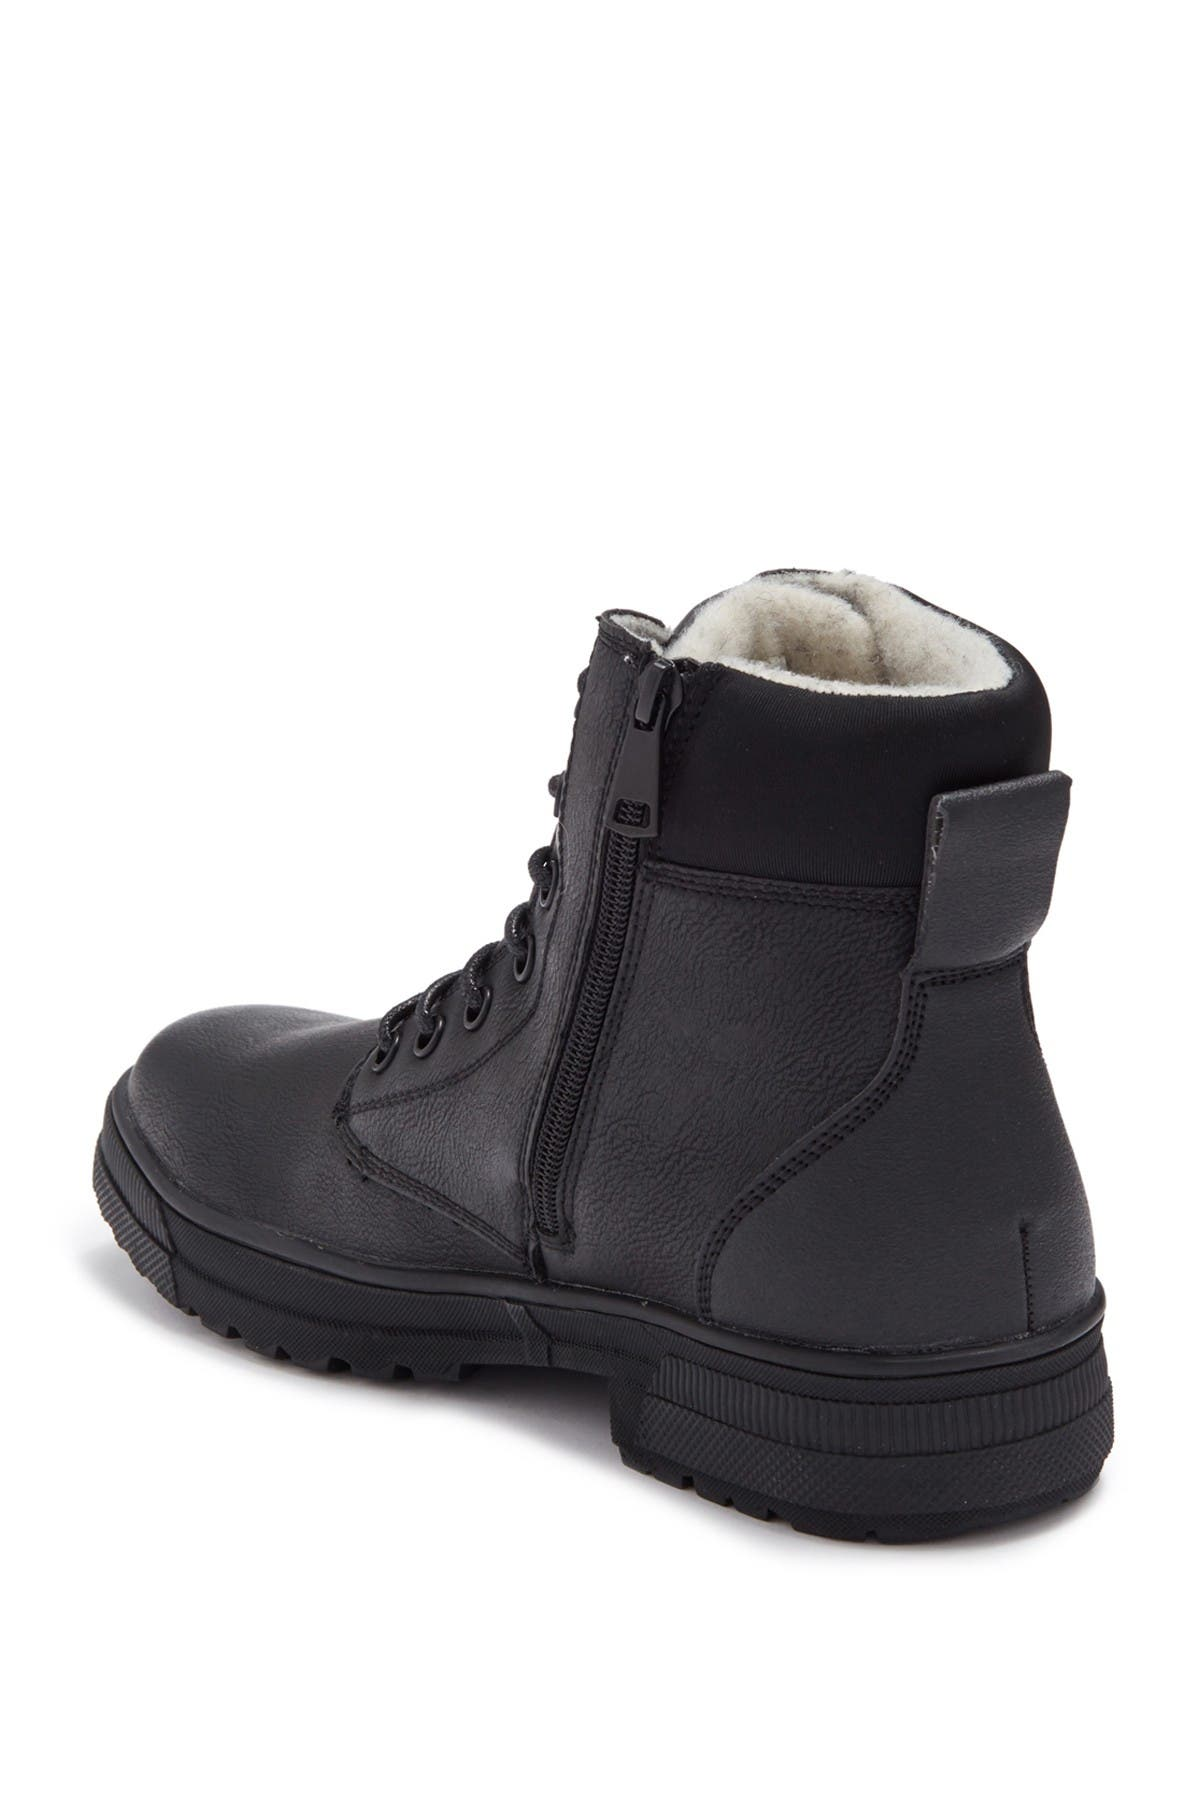 Image of Steve Madden Deed Leather Boot